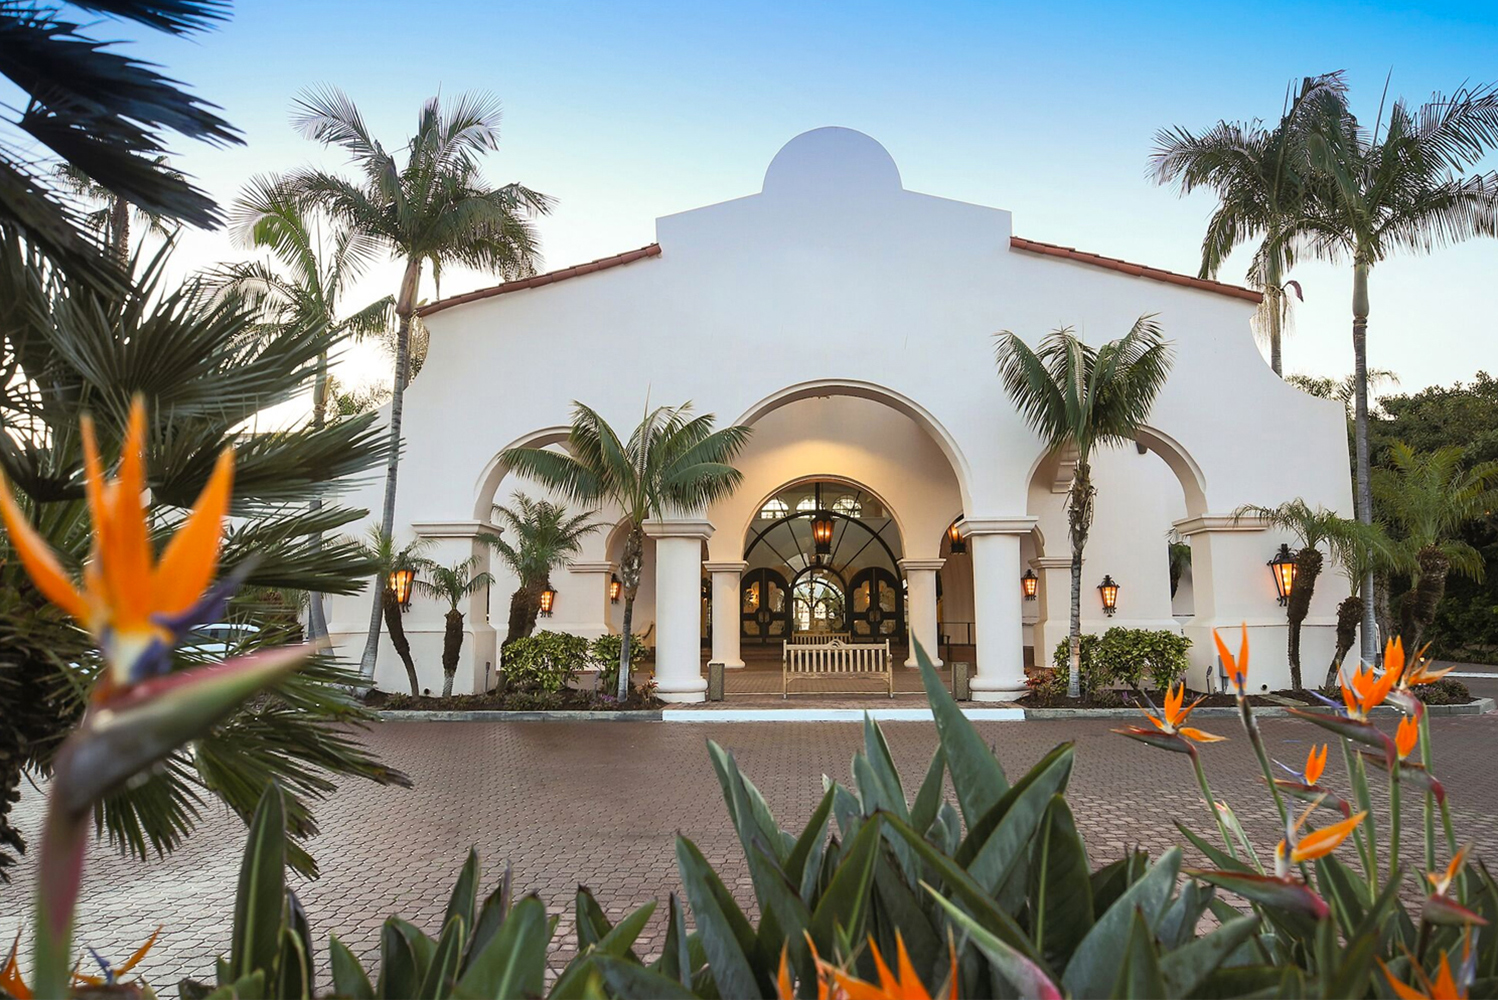 Hilton Santa Barbara Beachfront Resort opened following the complete renovation of the former The Fess Parker, A DoubleTree by Hilton Resort.